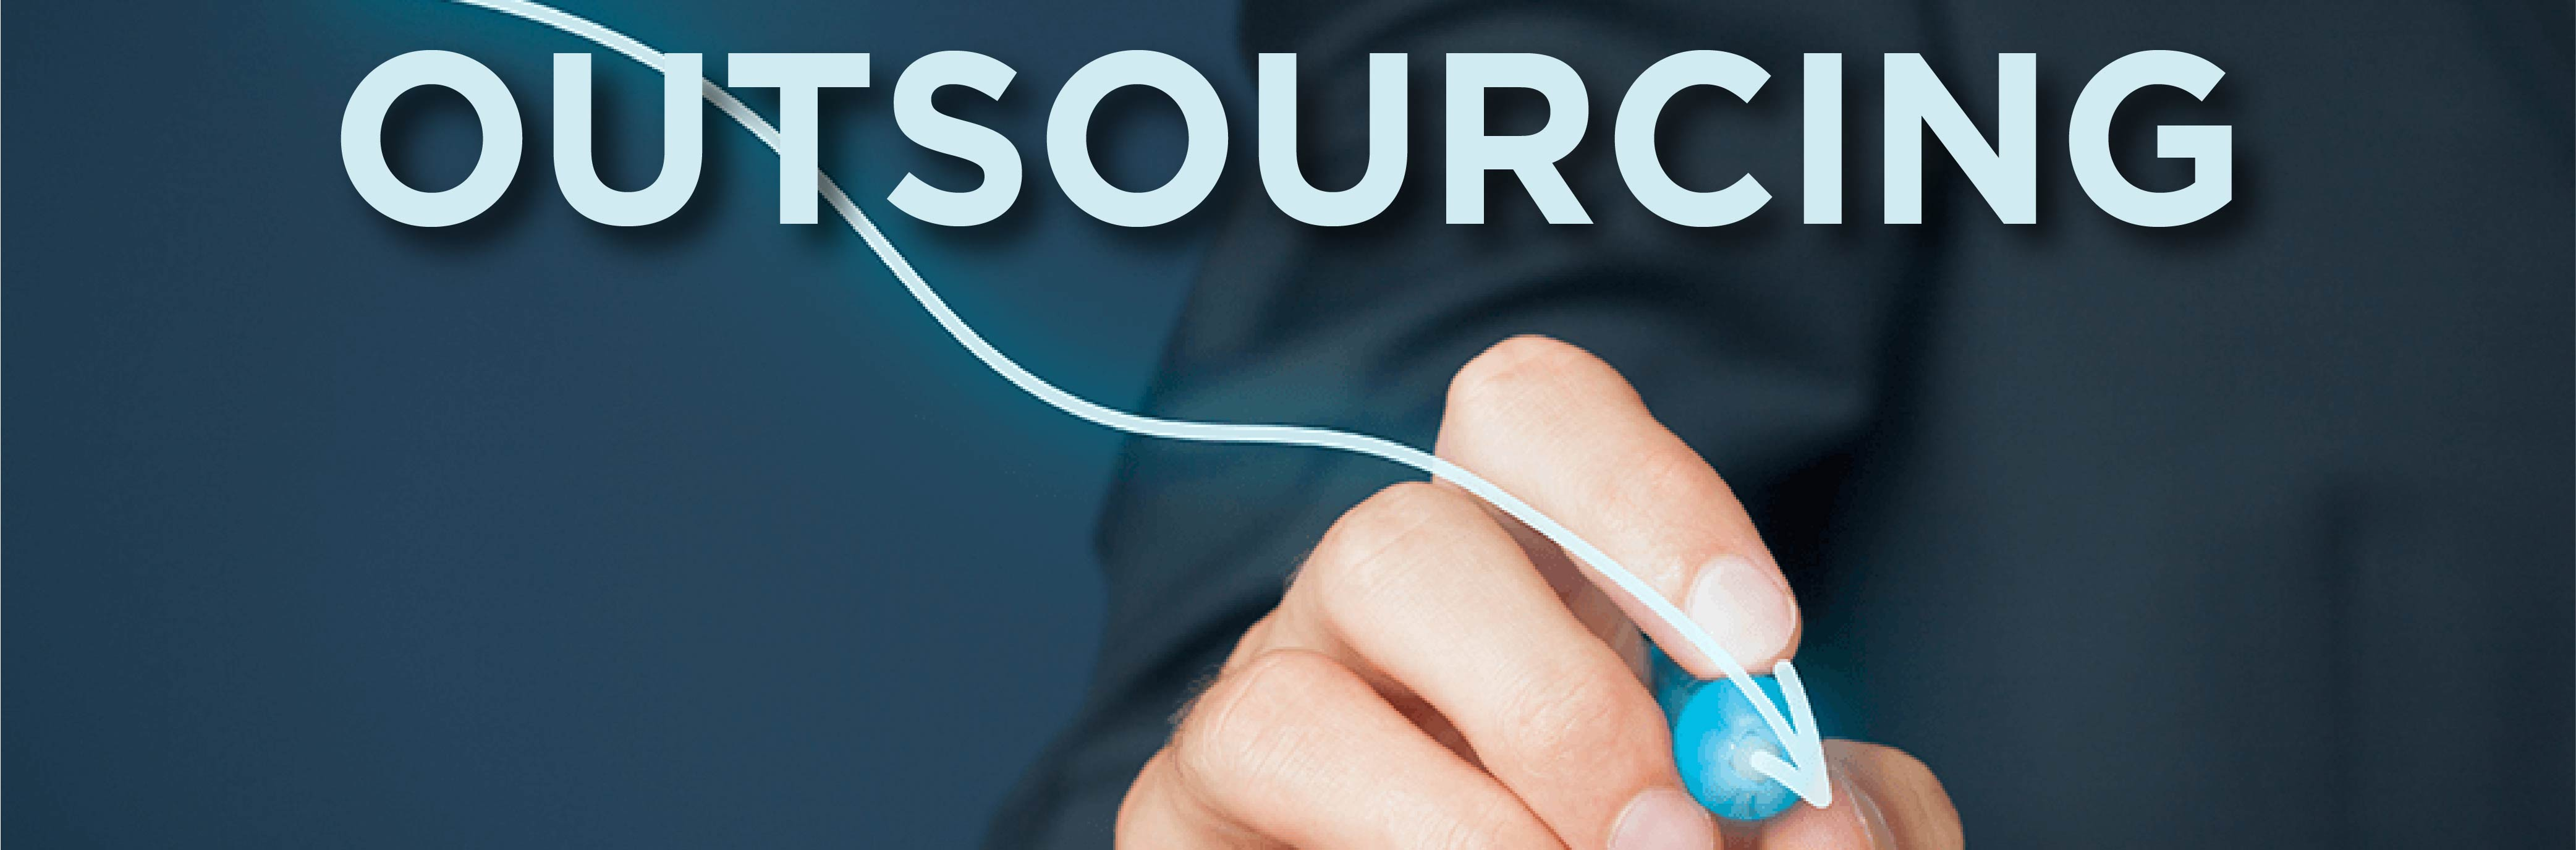 Outsourcing the Business